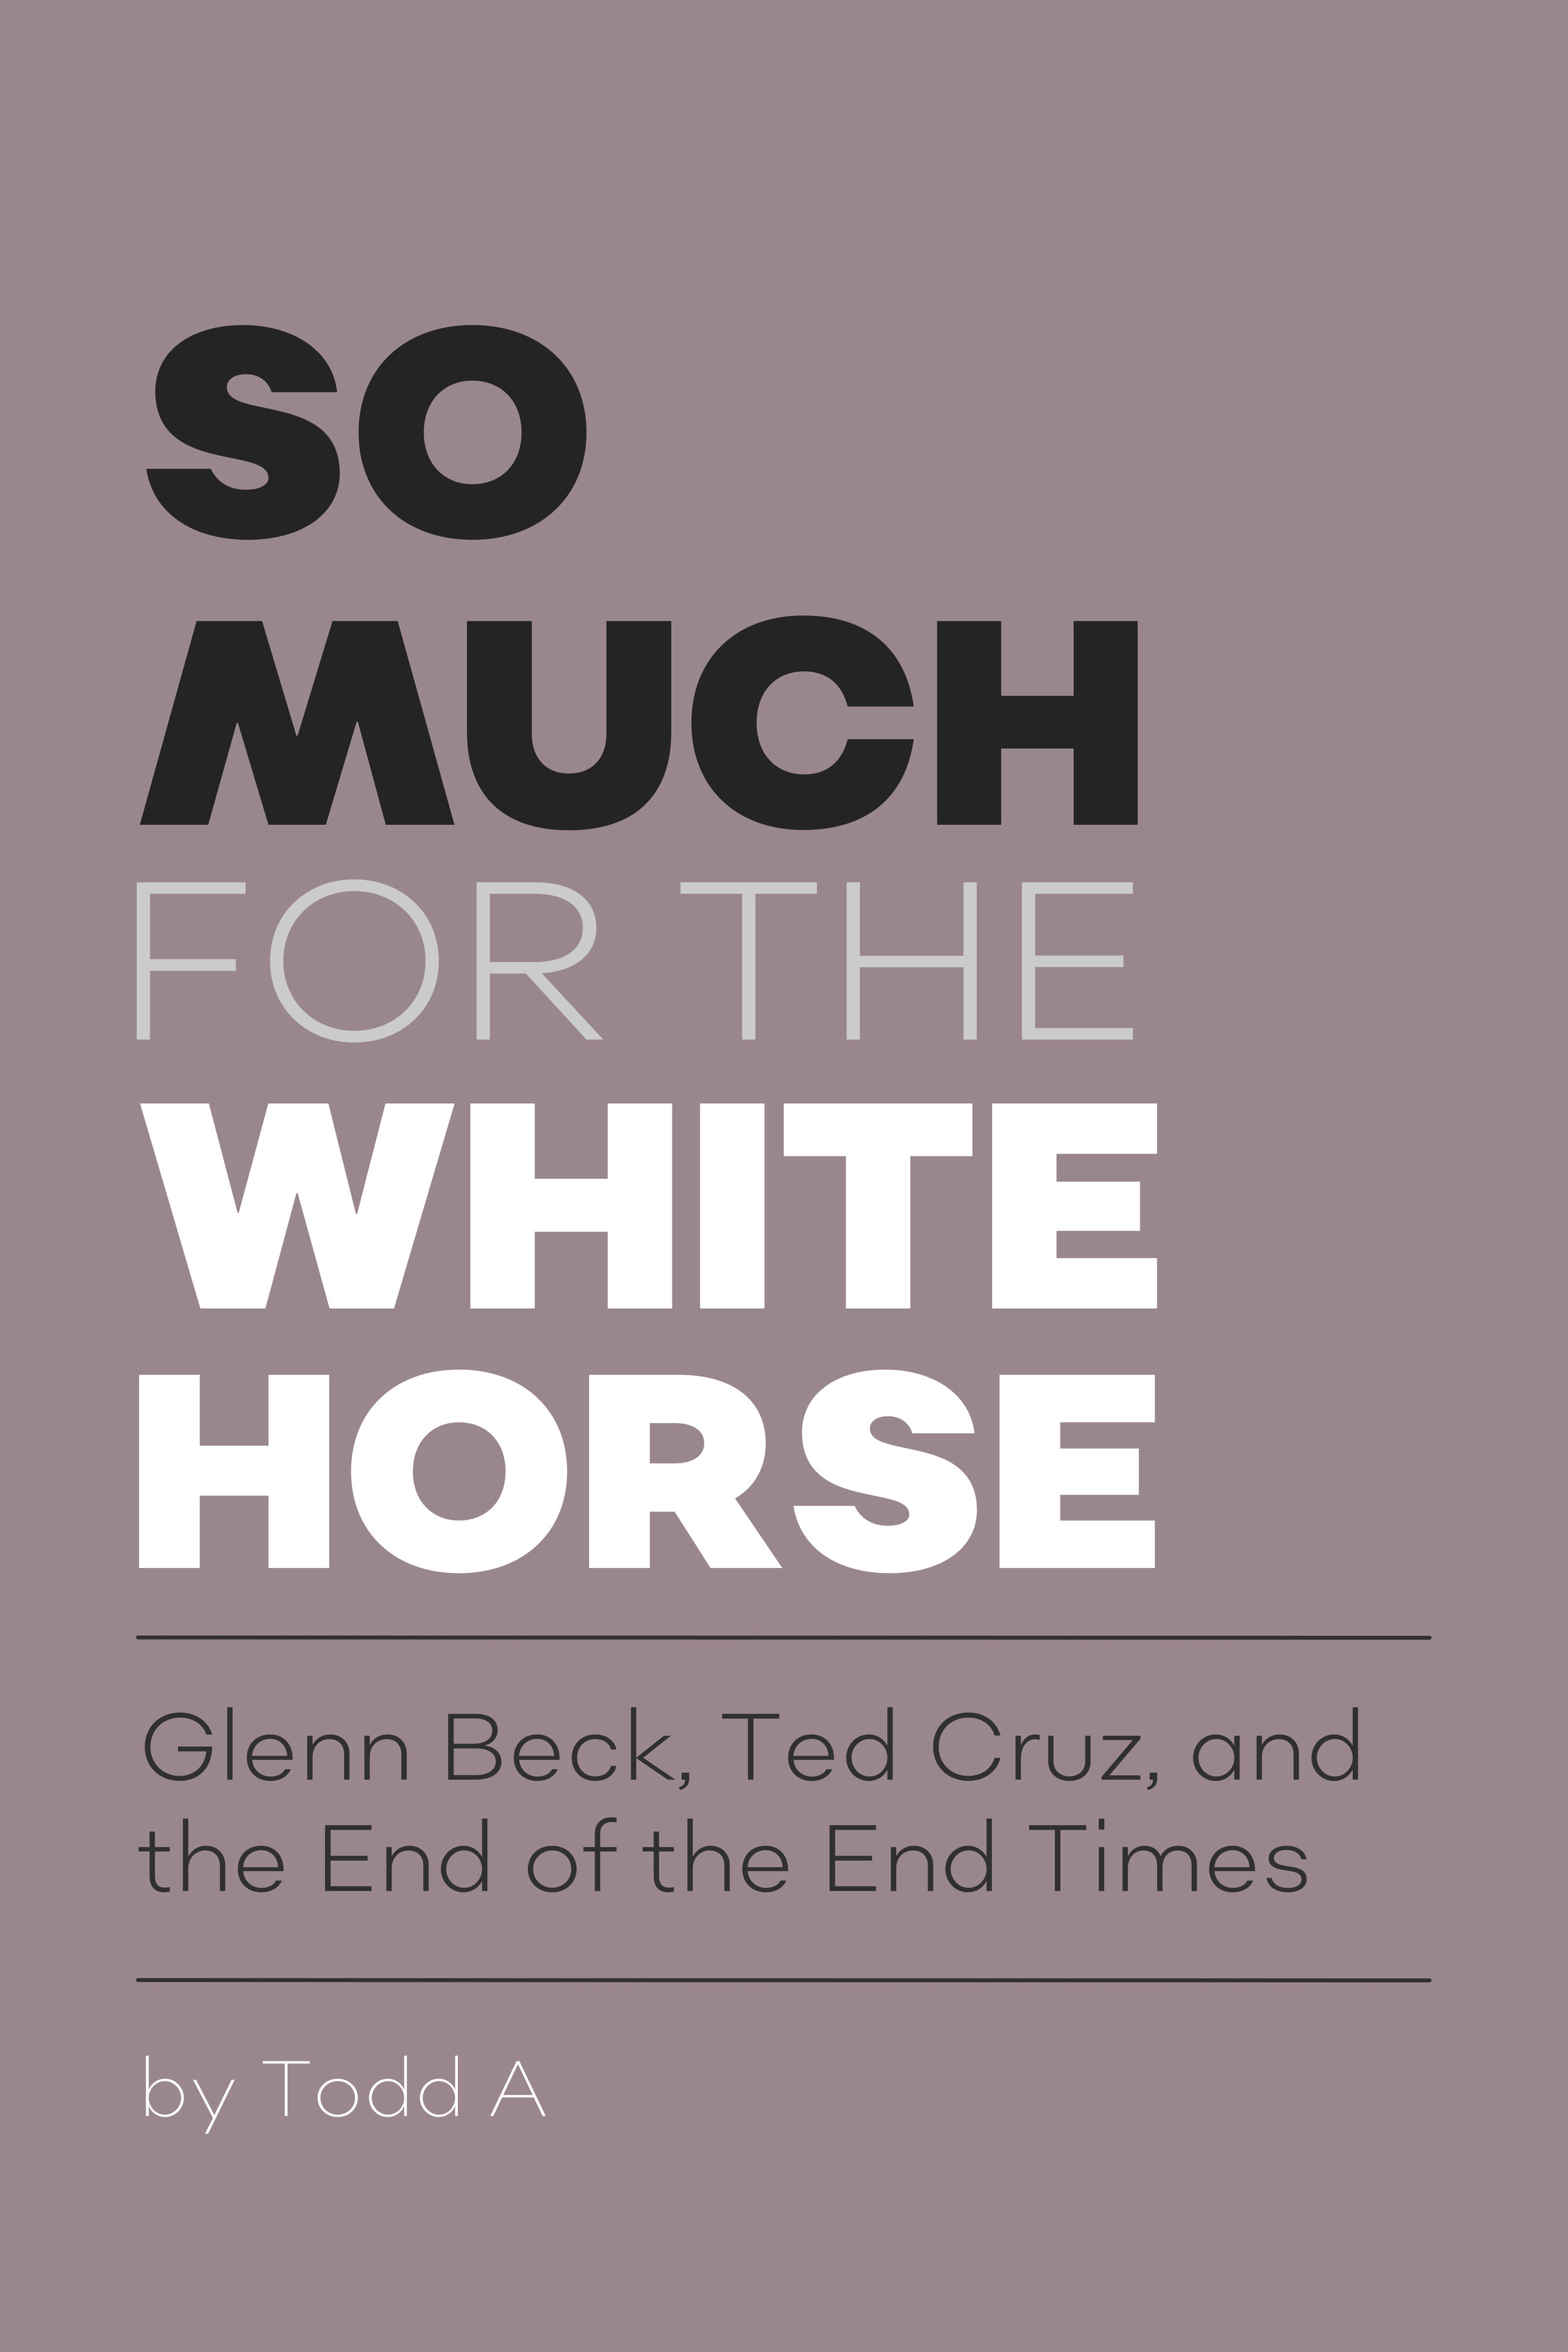 So Much For The White Horse